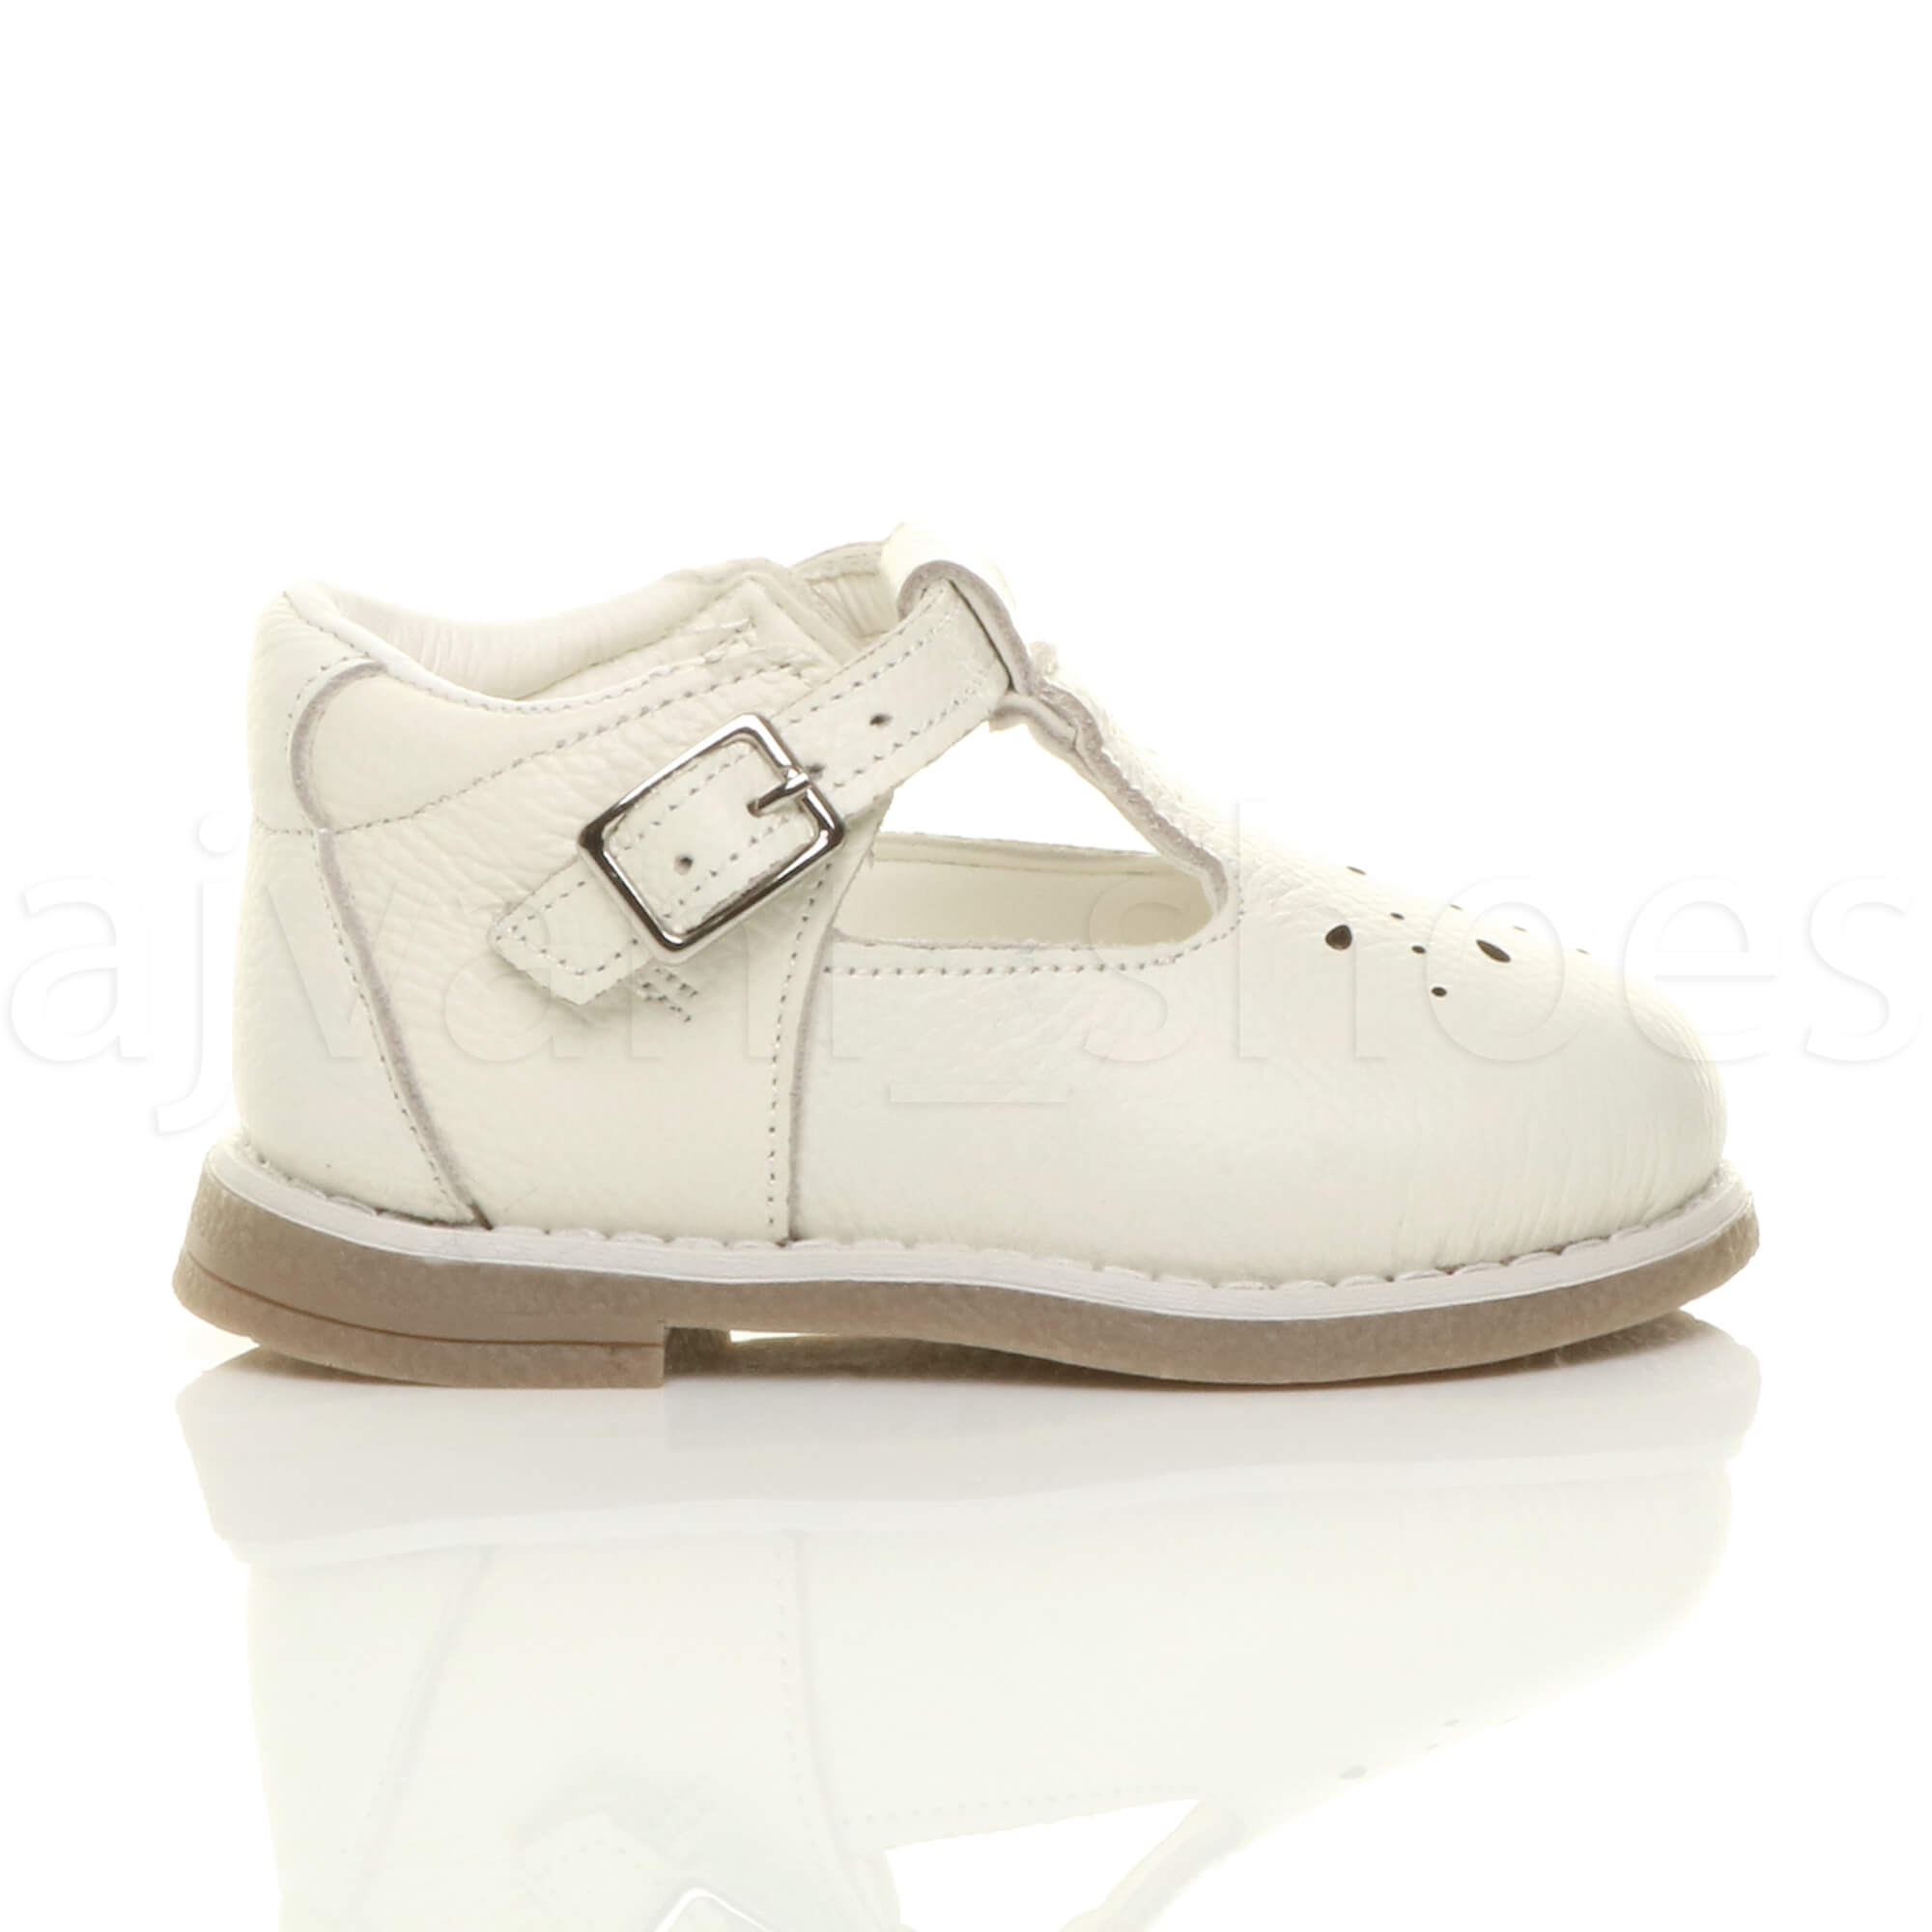 152fb53da628 GIRLS CHILDRENS INFANT TODDLER LOW HEEL LEATHER T-BAR FLEXIBLE PARTY ...